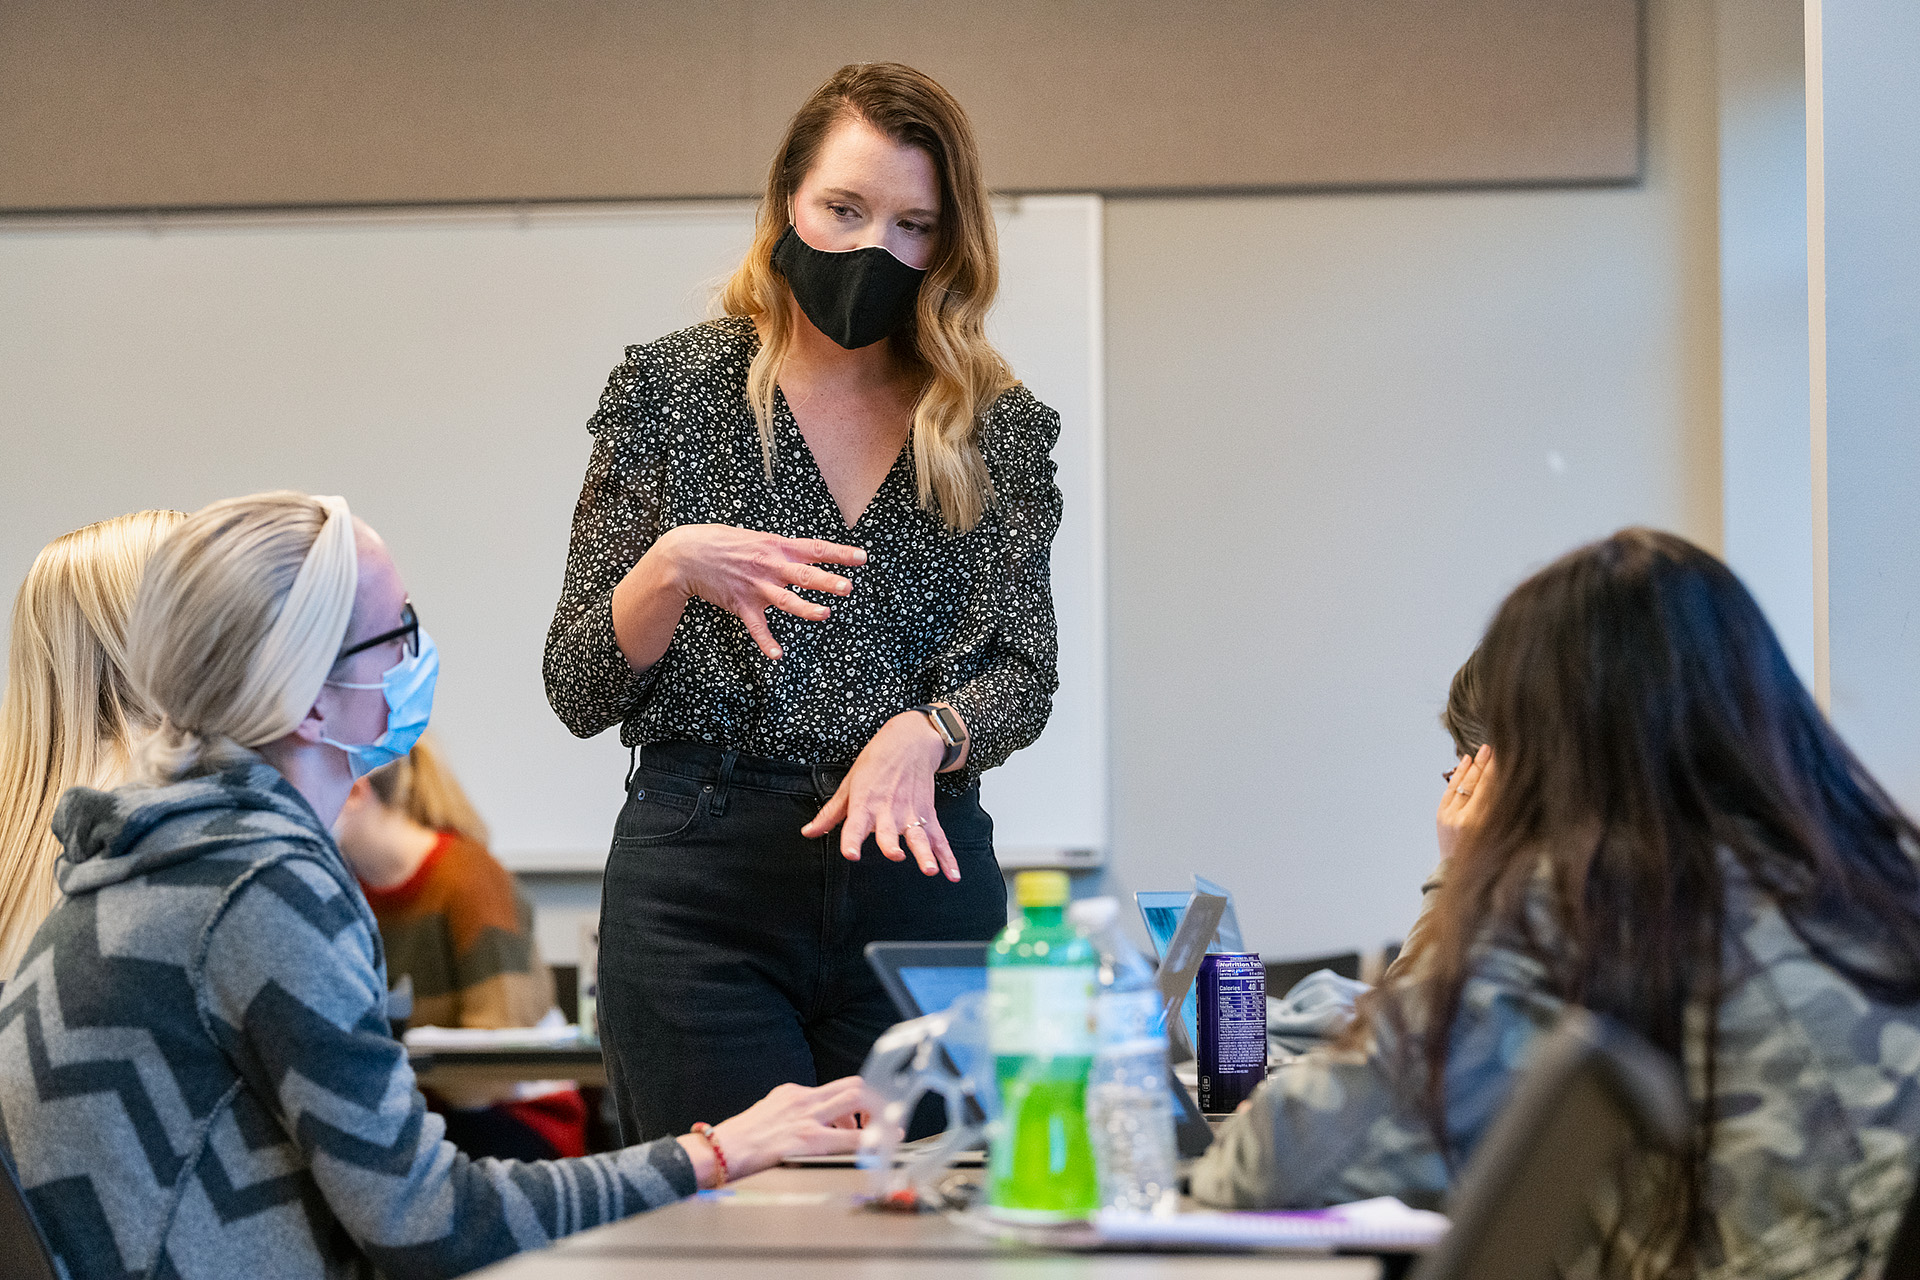 Katie Schrodt, Elementary & Special Education faculty, teaching in the College of Education Building. (Photo: Andy Heidt)